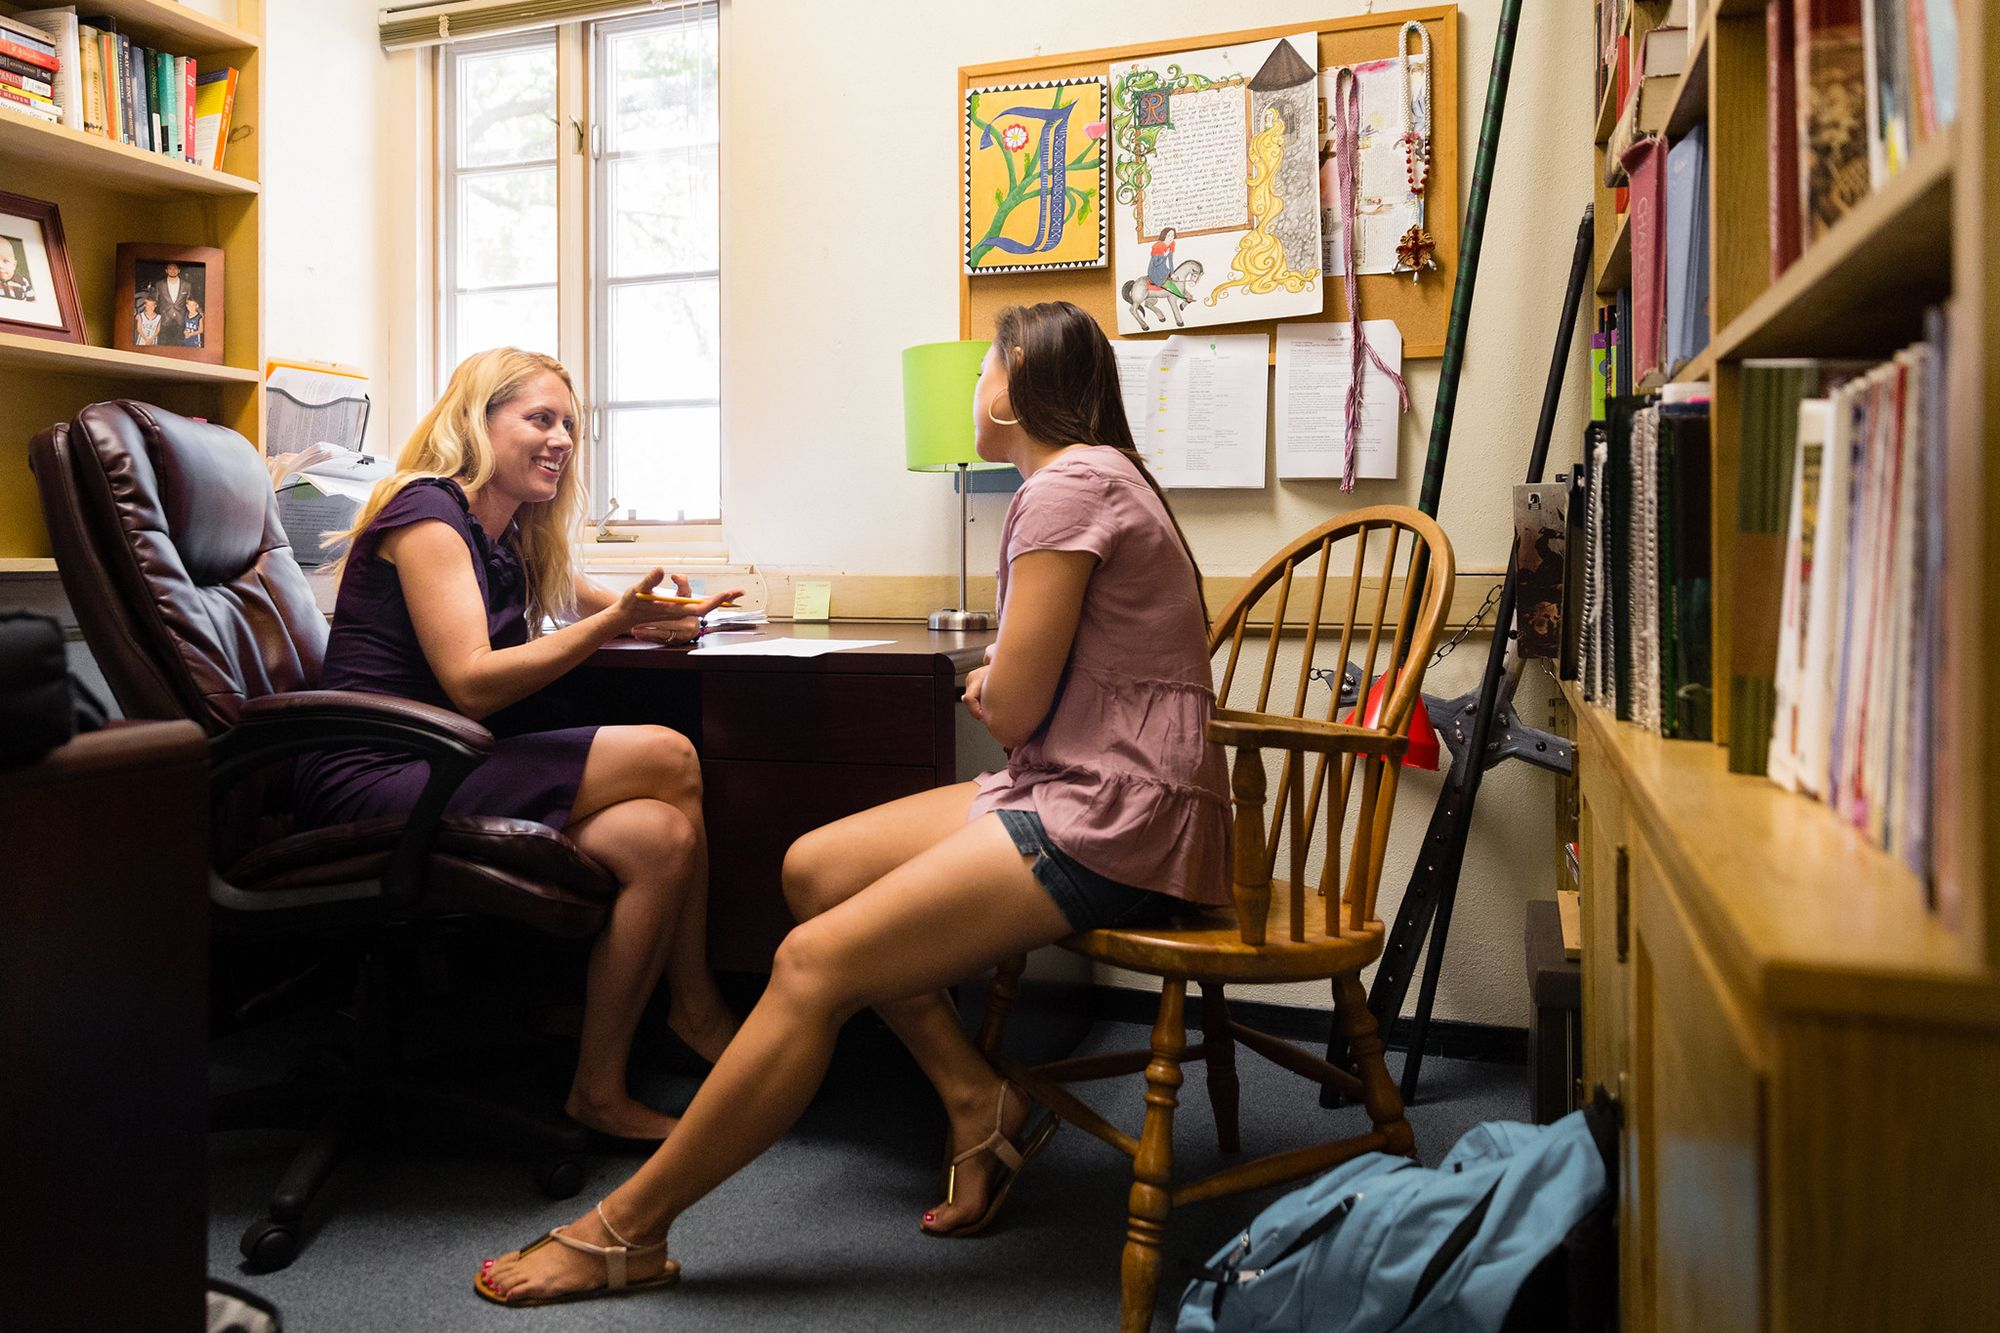 A professor advises a student one on one.